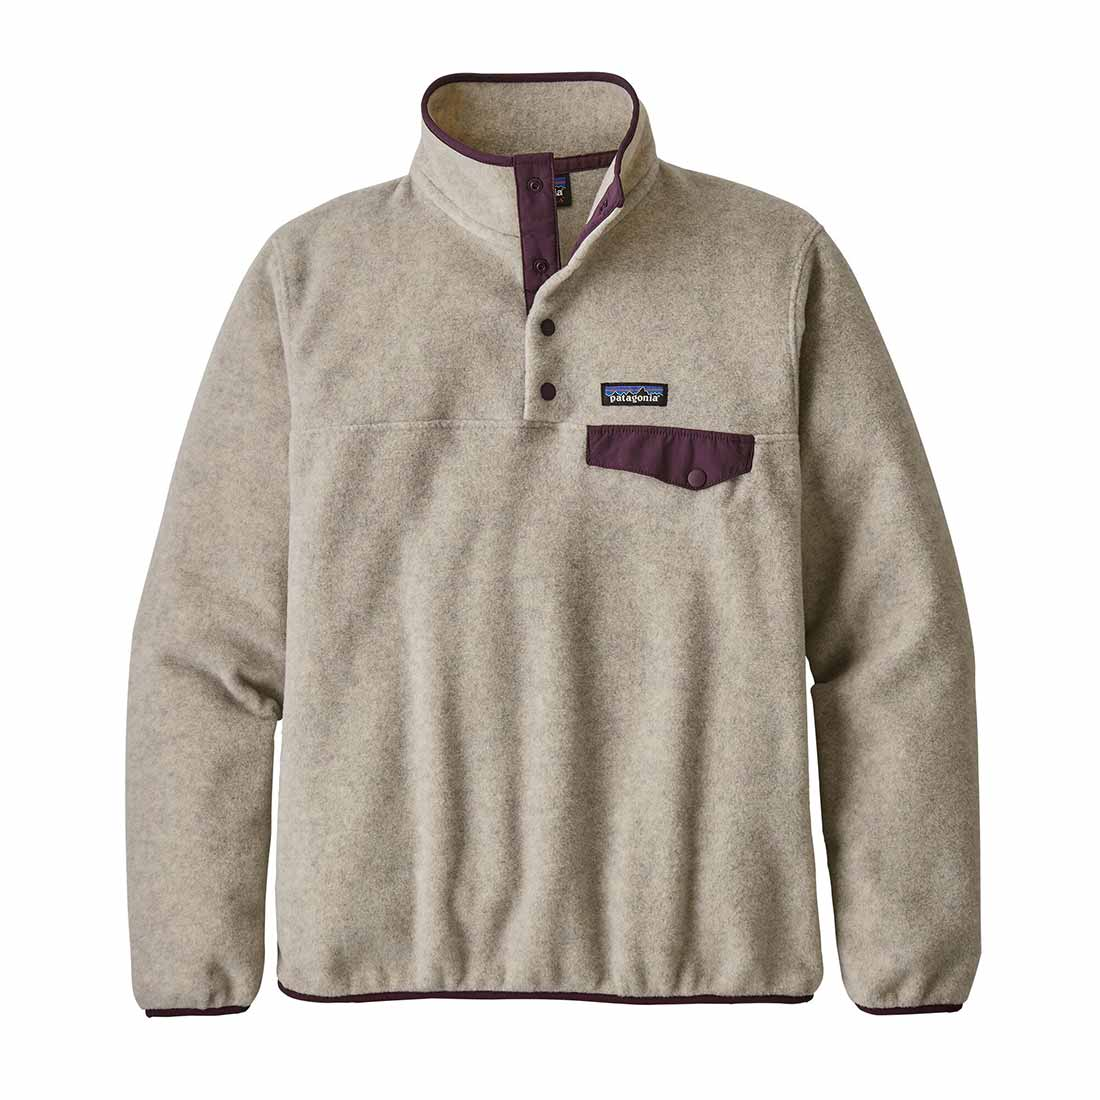 Patagonia Women's Synchchilla Snap-T - Oatmeal Heather/Deep Plum